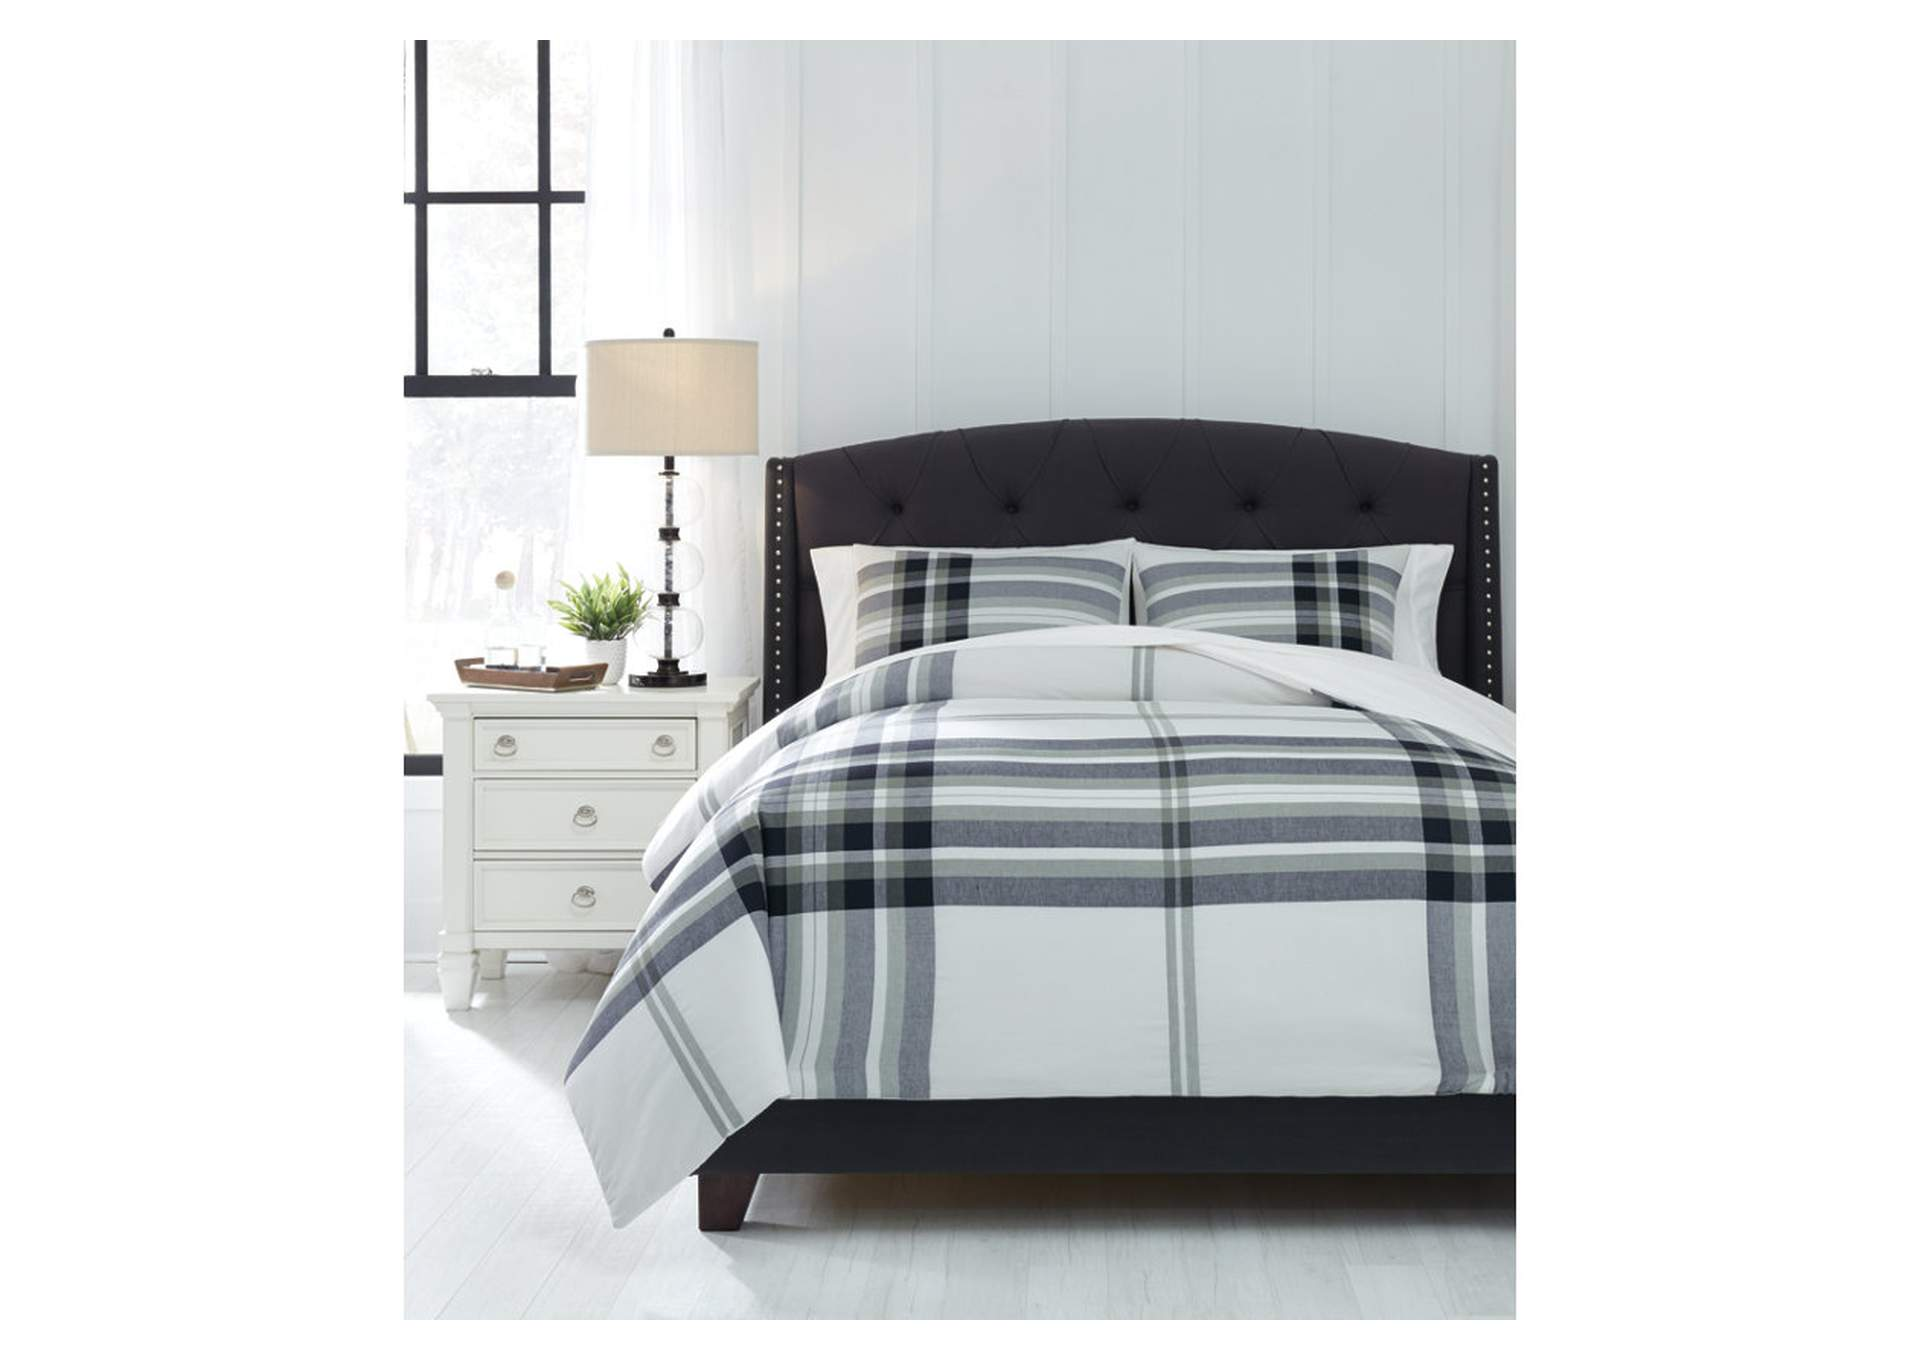 Stayner Black/Gray King Coverlet Set,Signature Design By Ashley